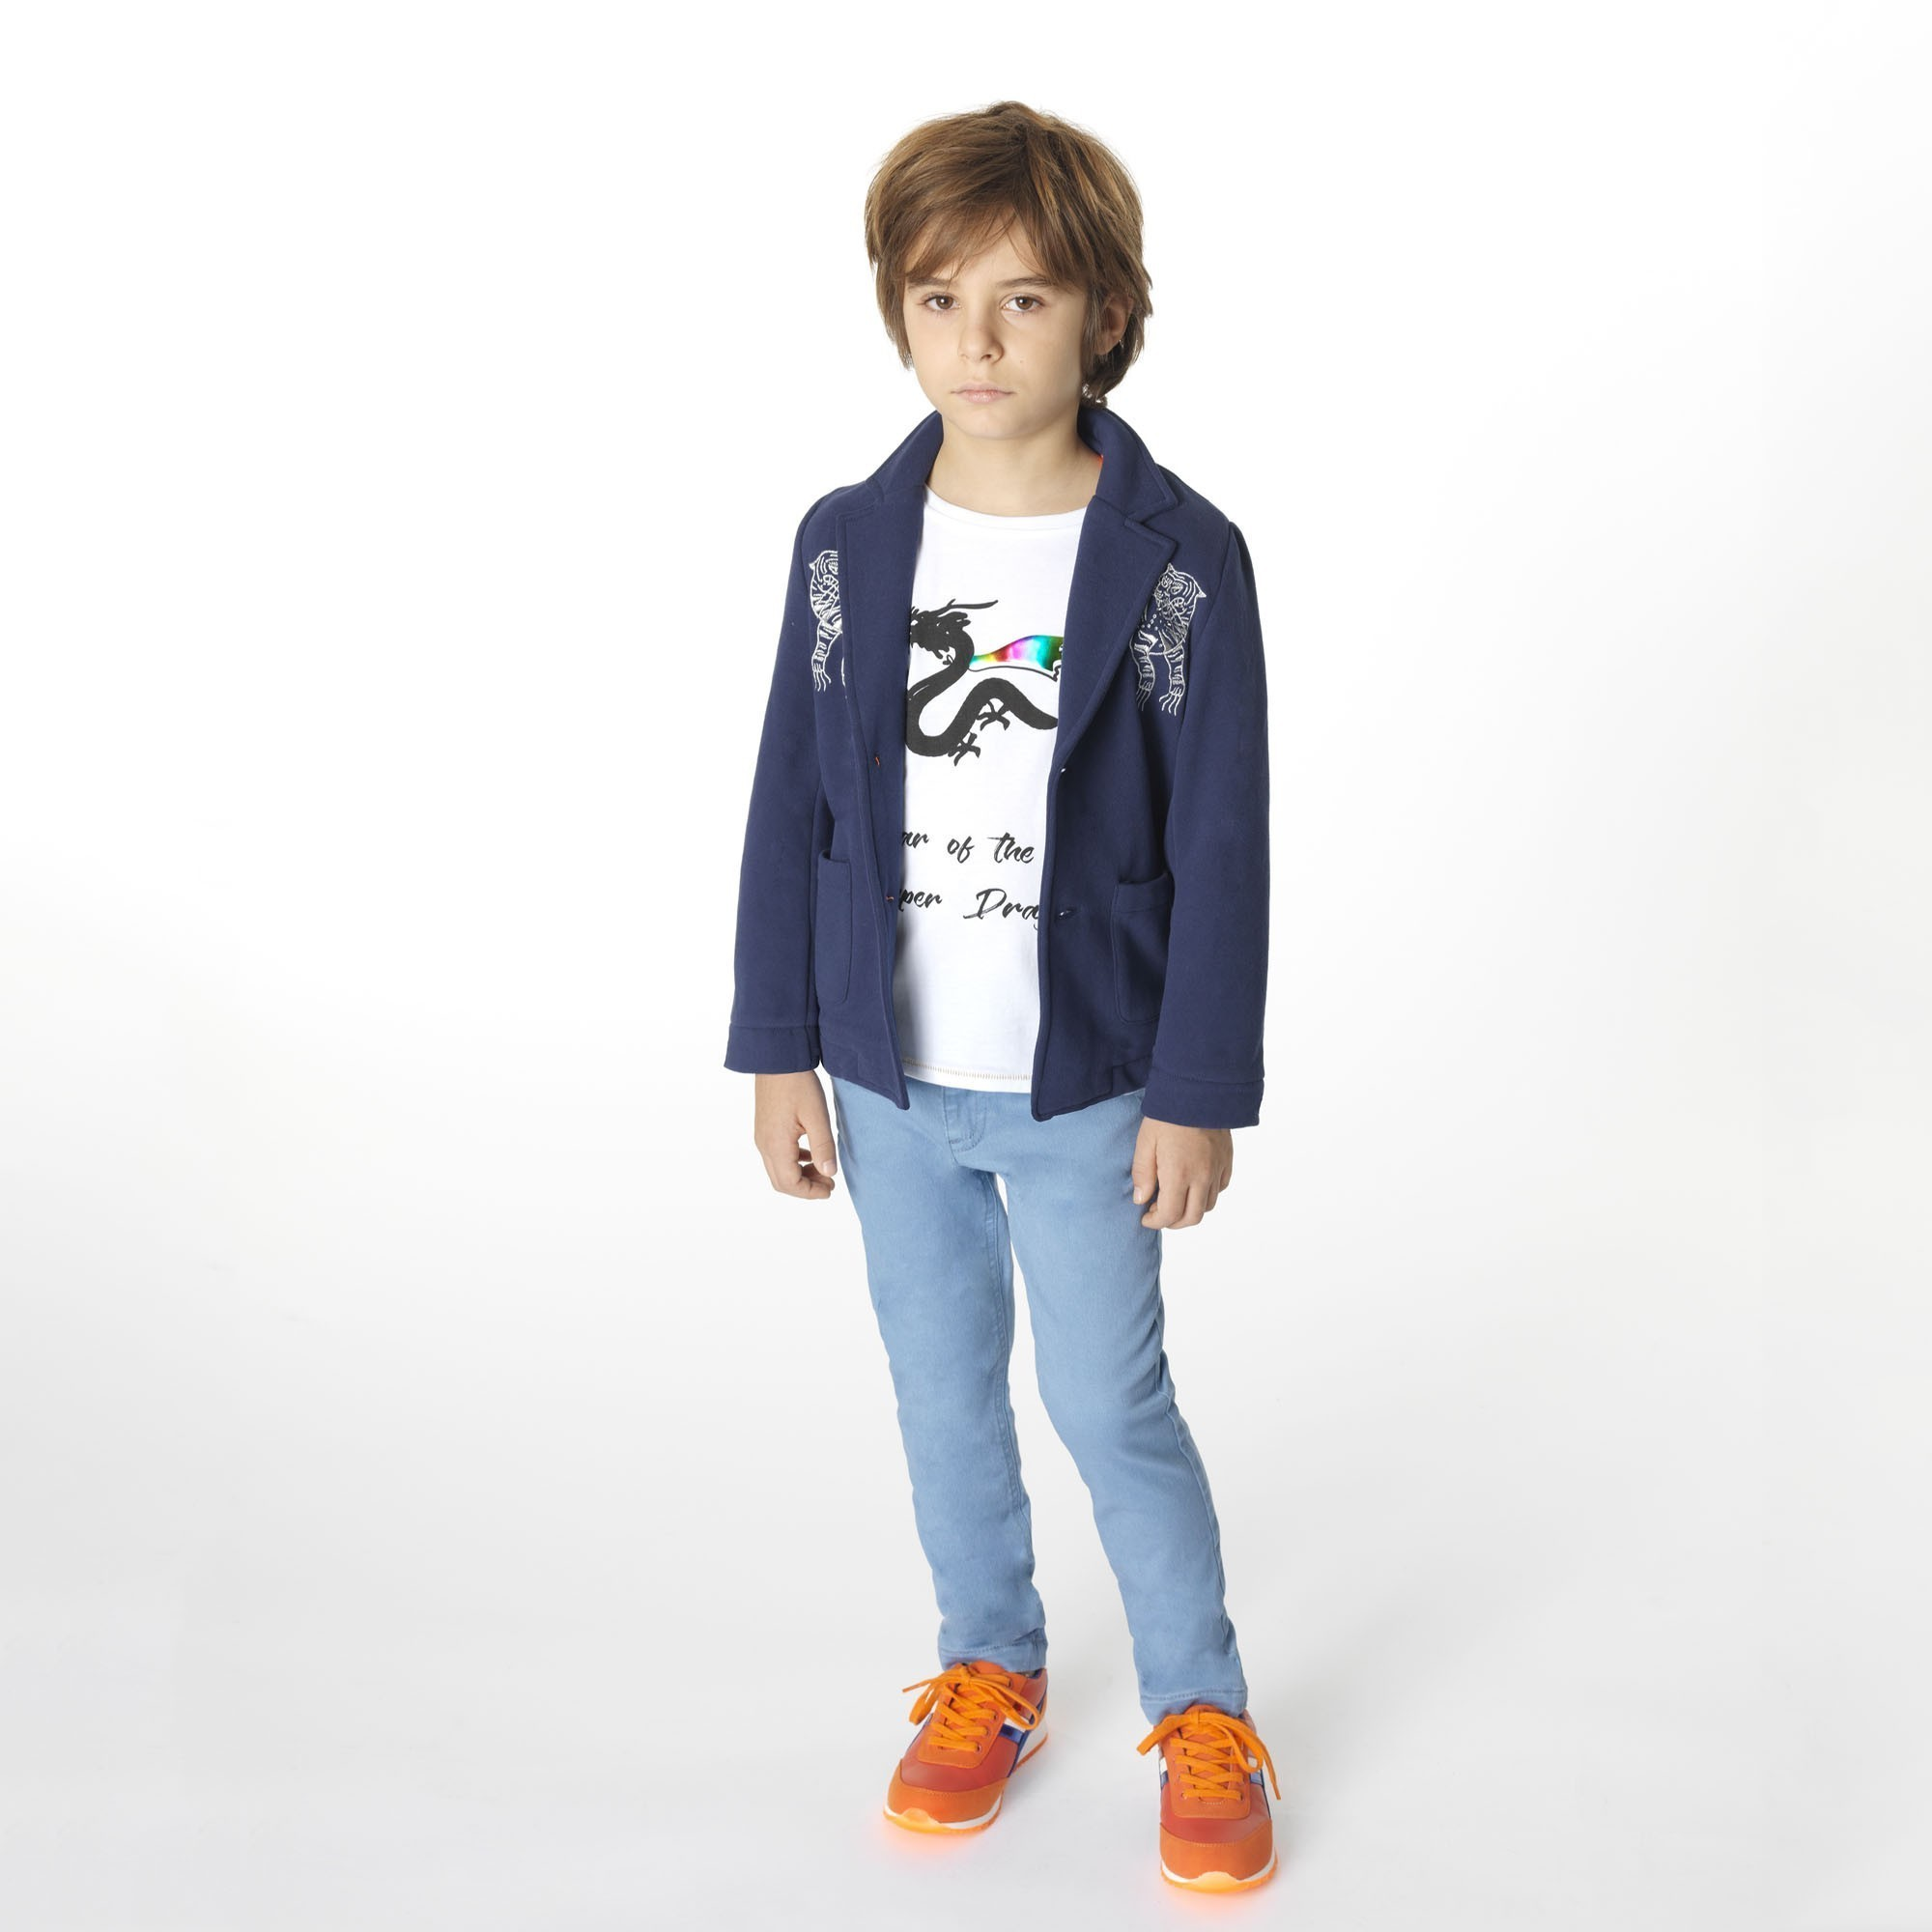 Novelty T-shirt with gift BILLYBANDIT for BOY